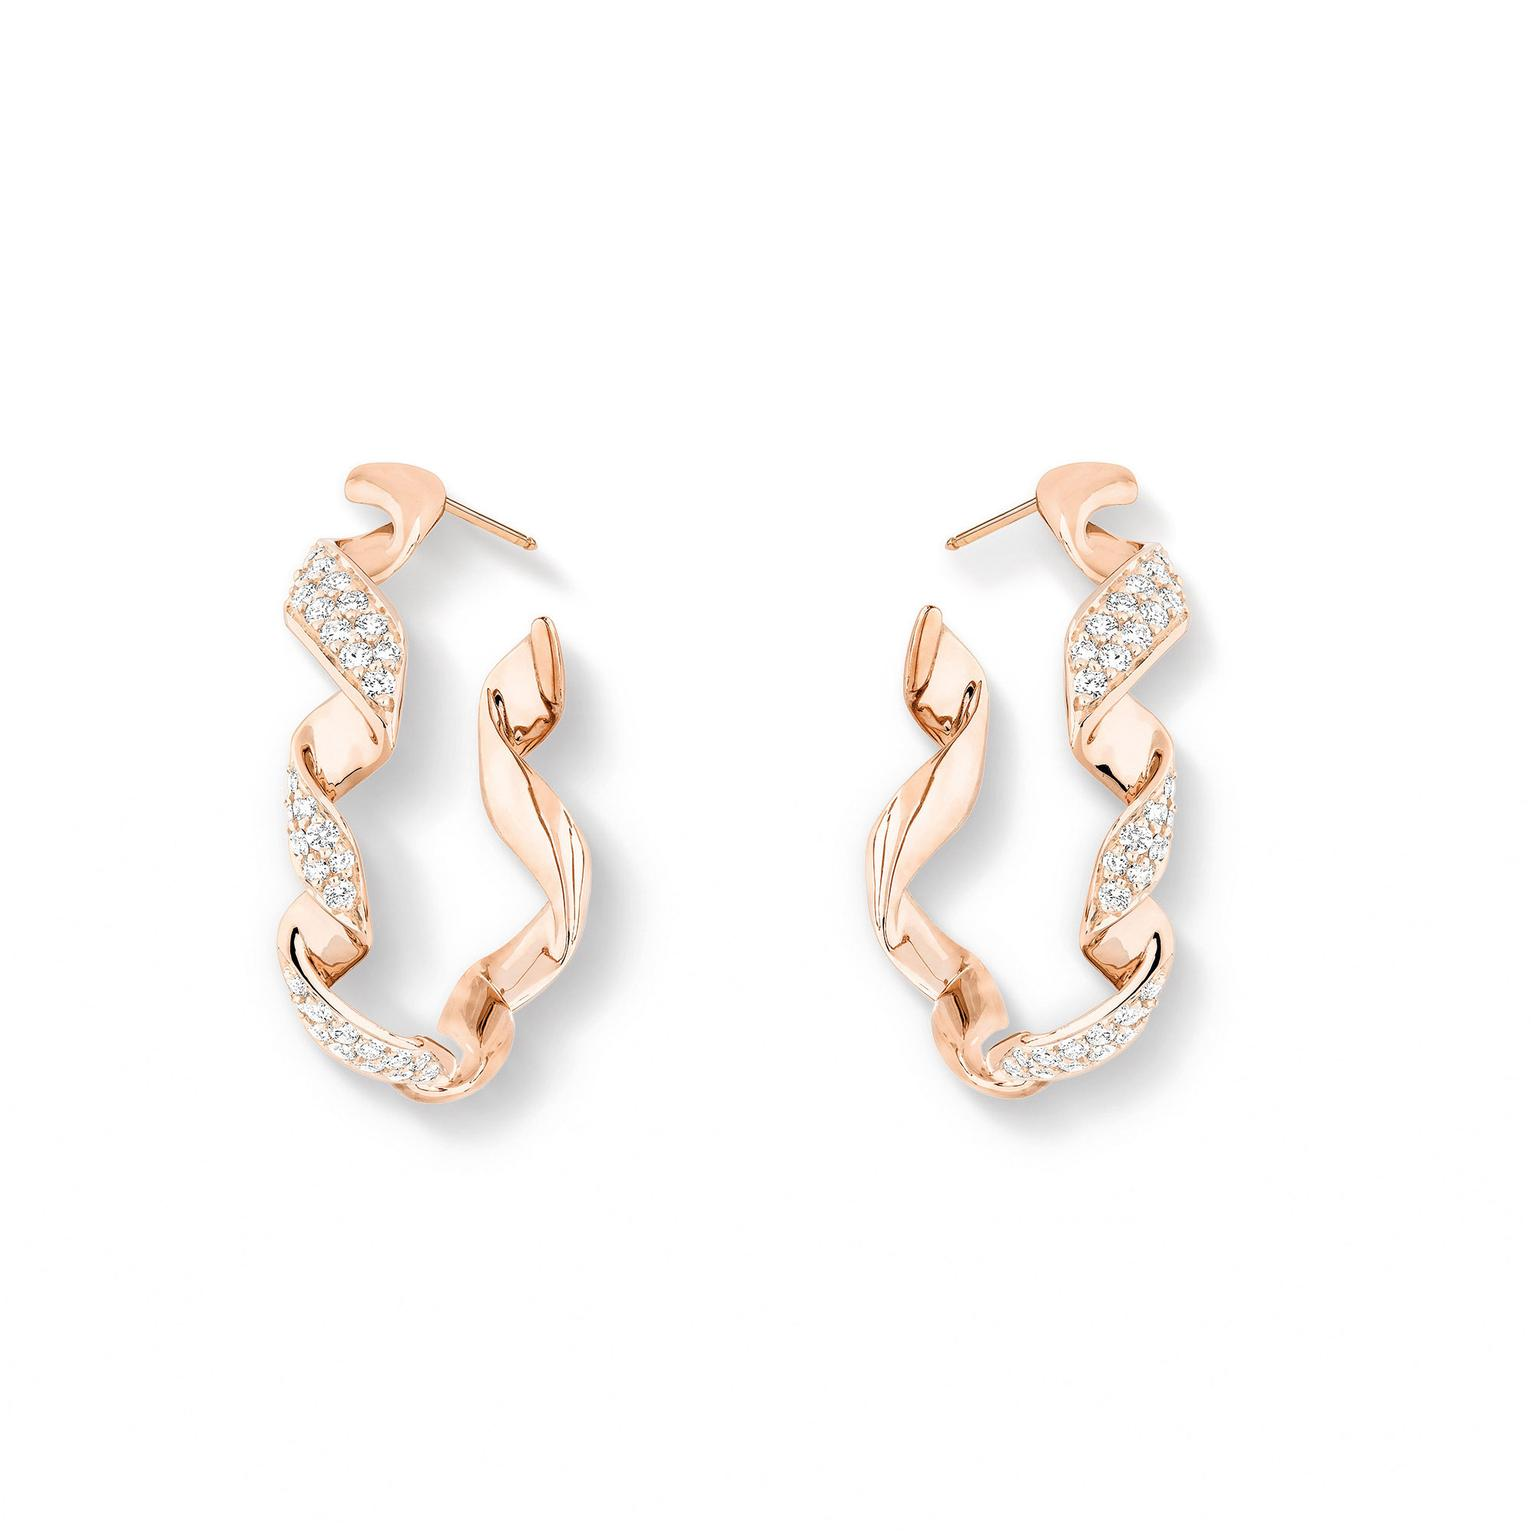 Dior Archi pink gold diamond earrings